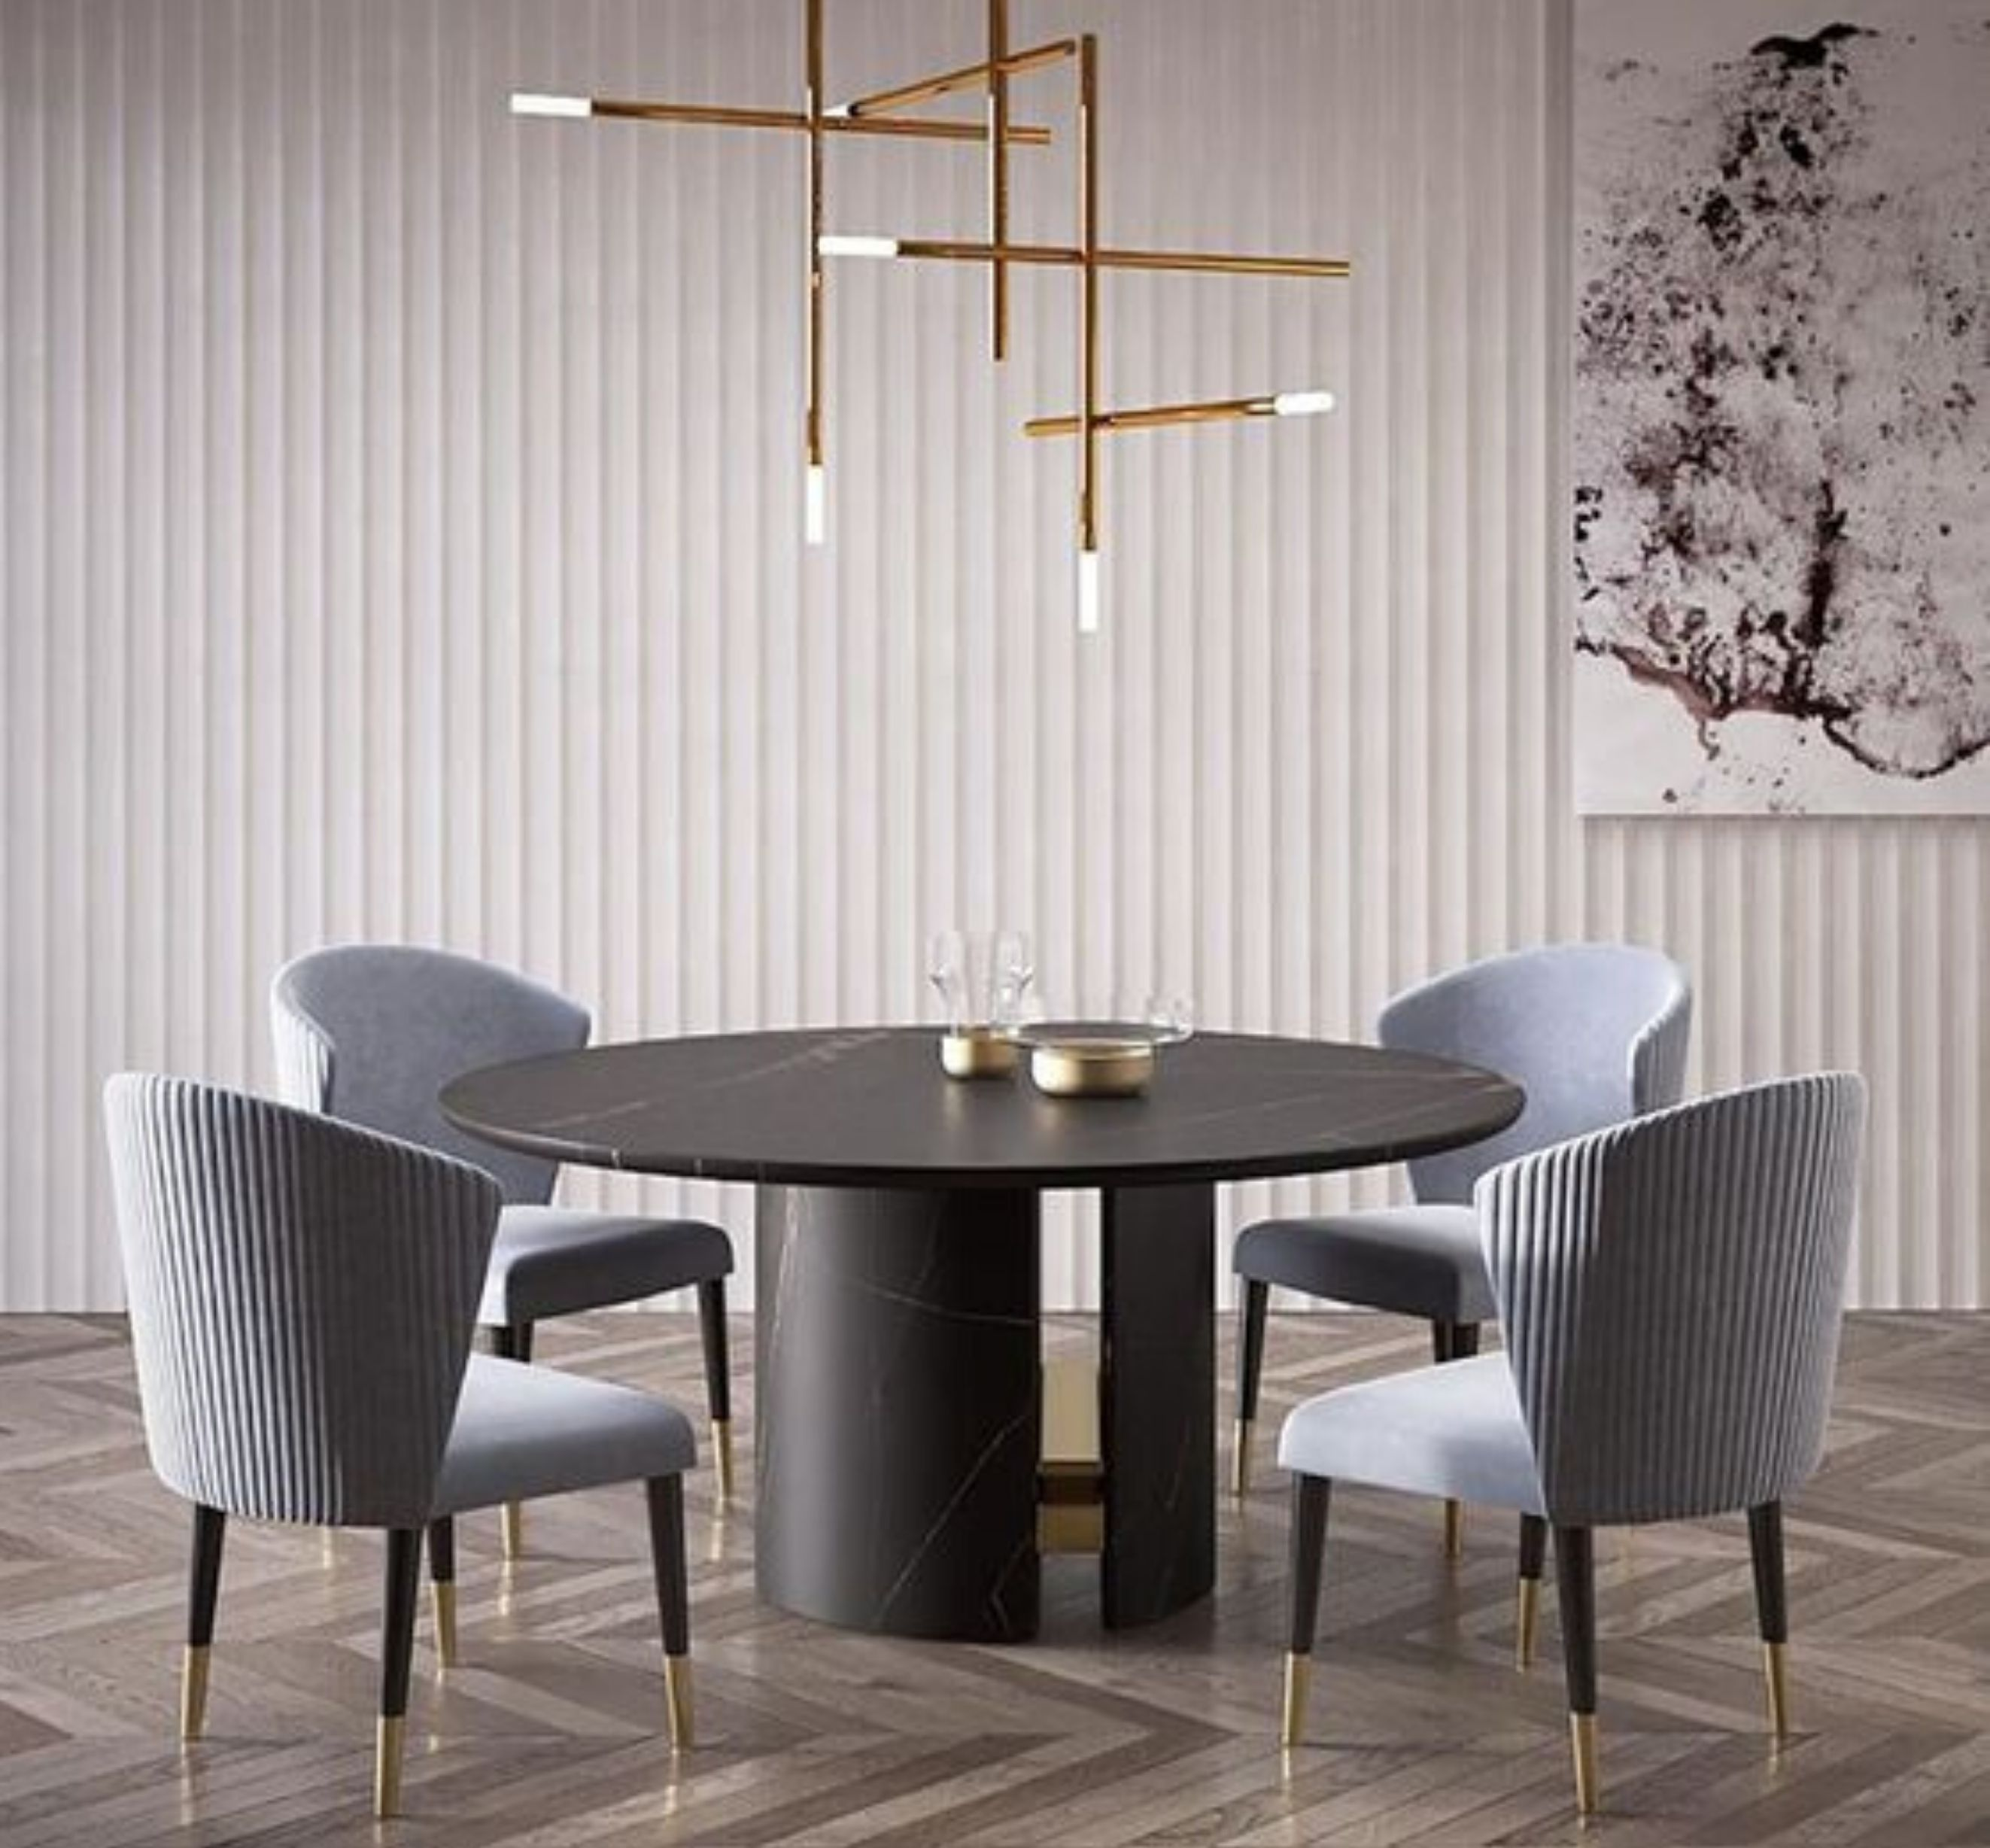 Dining Table That Will Add Glam And Luxury To Your Dining Area